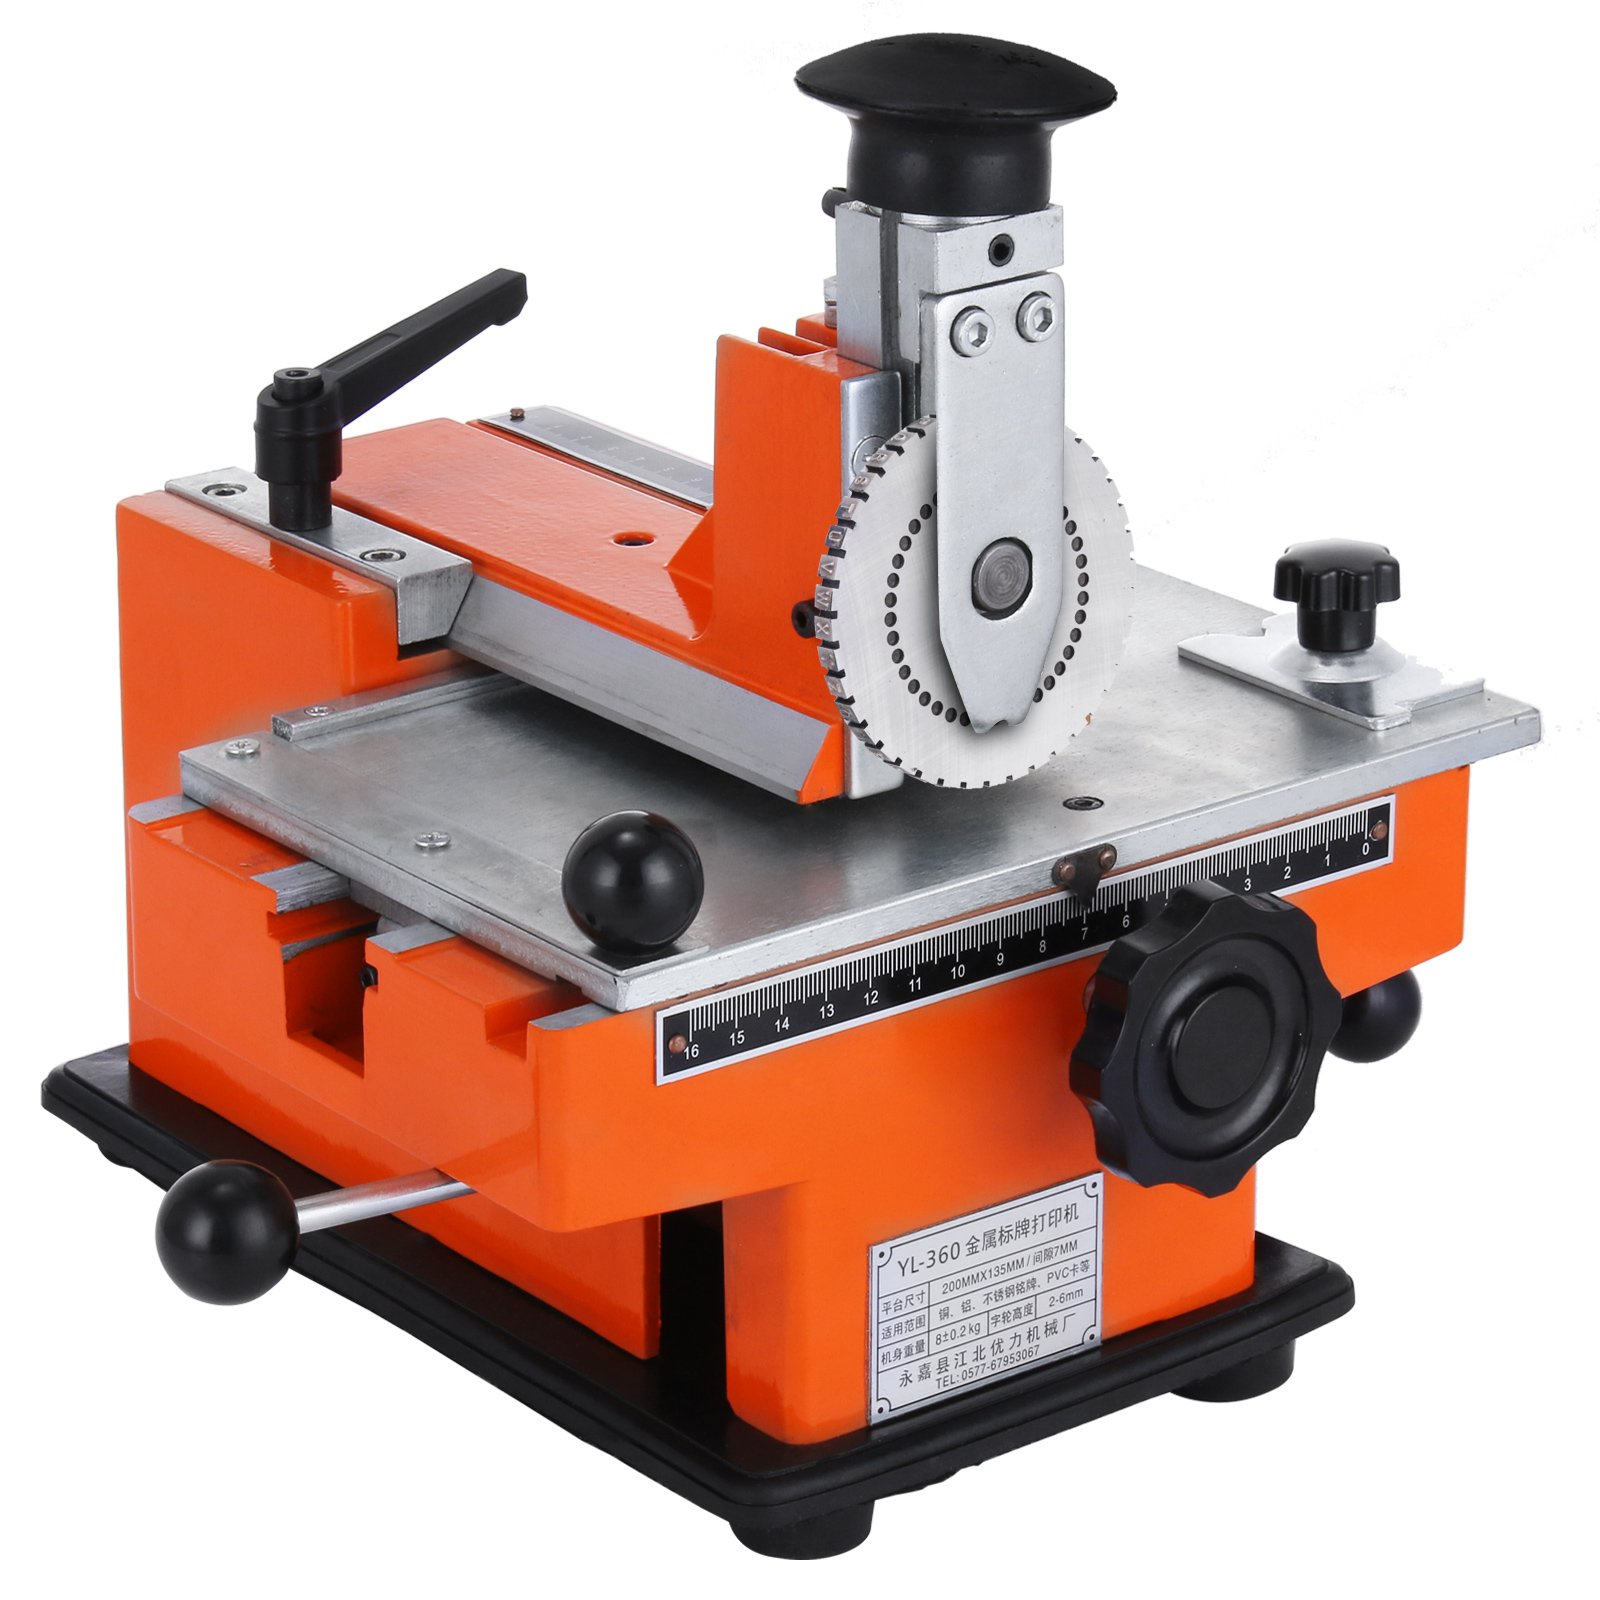 Happybuy Semi-automatic Sheet Embosser 2~4 Characters per Second Metal Embosser Working Plate 7.8''5.3'' Embossing Label Maker Machine with 4mm Aluminum Plate Metal Tag Plate Dog Tag Printer